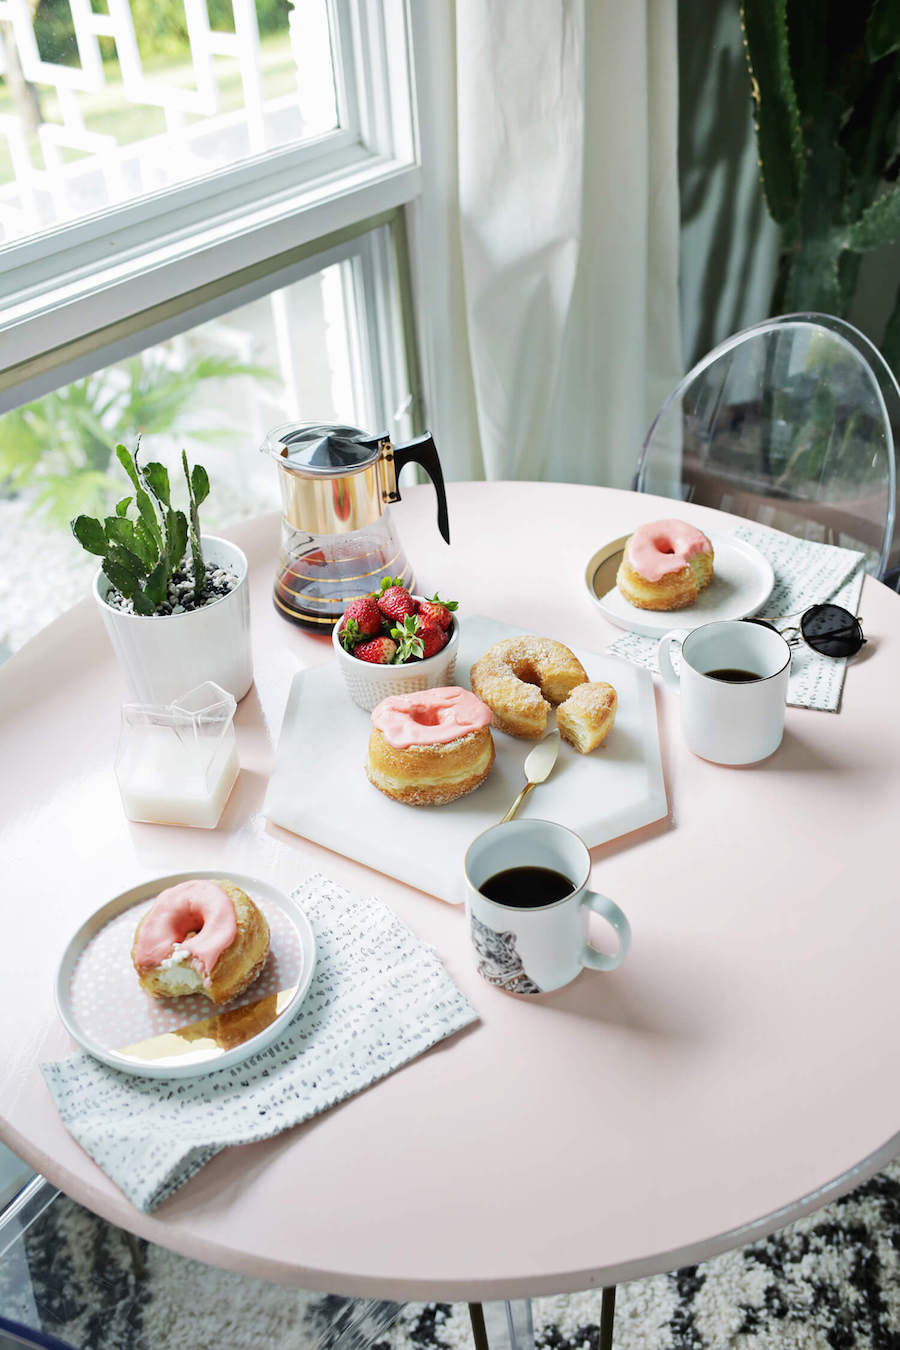 Donut breakfast on soft pink table